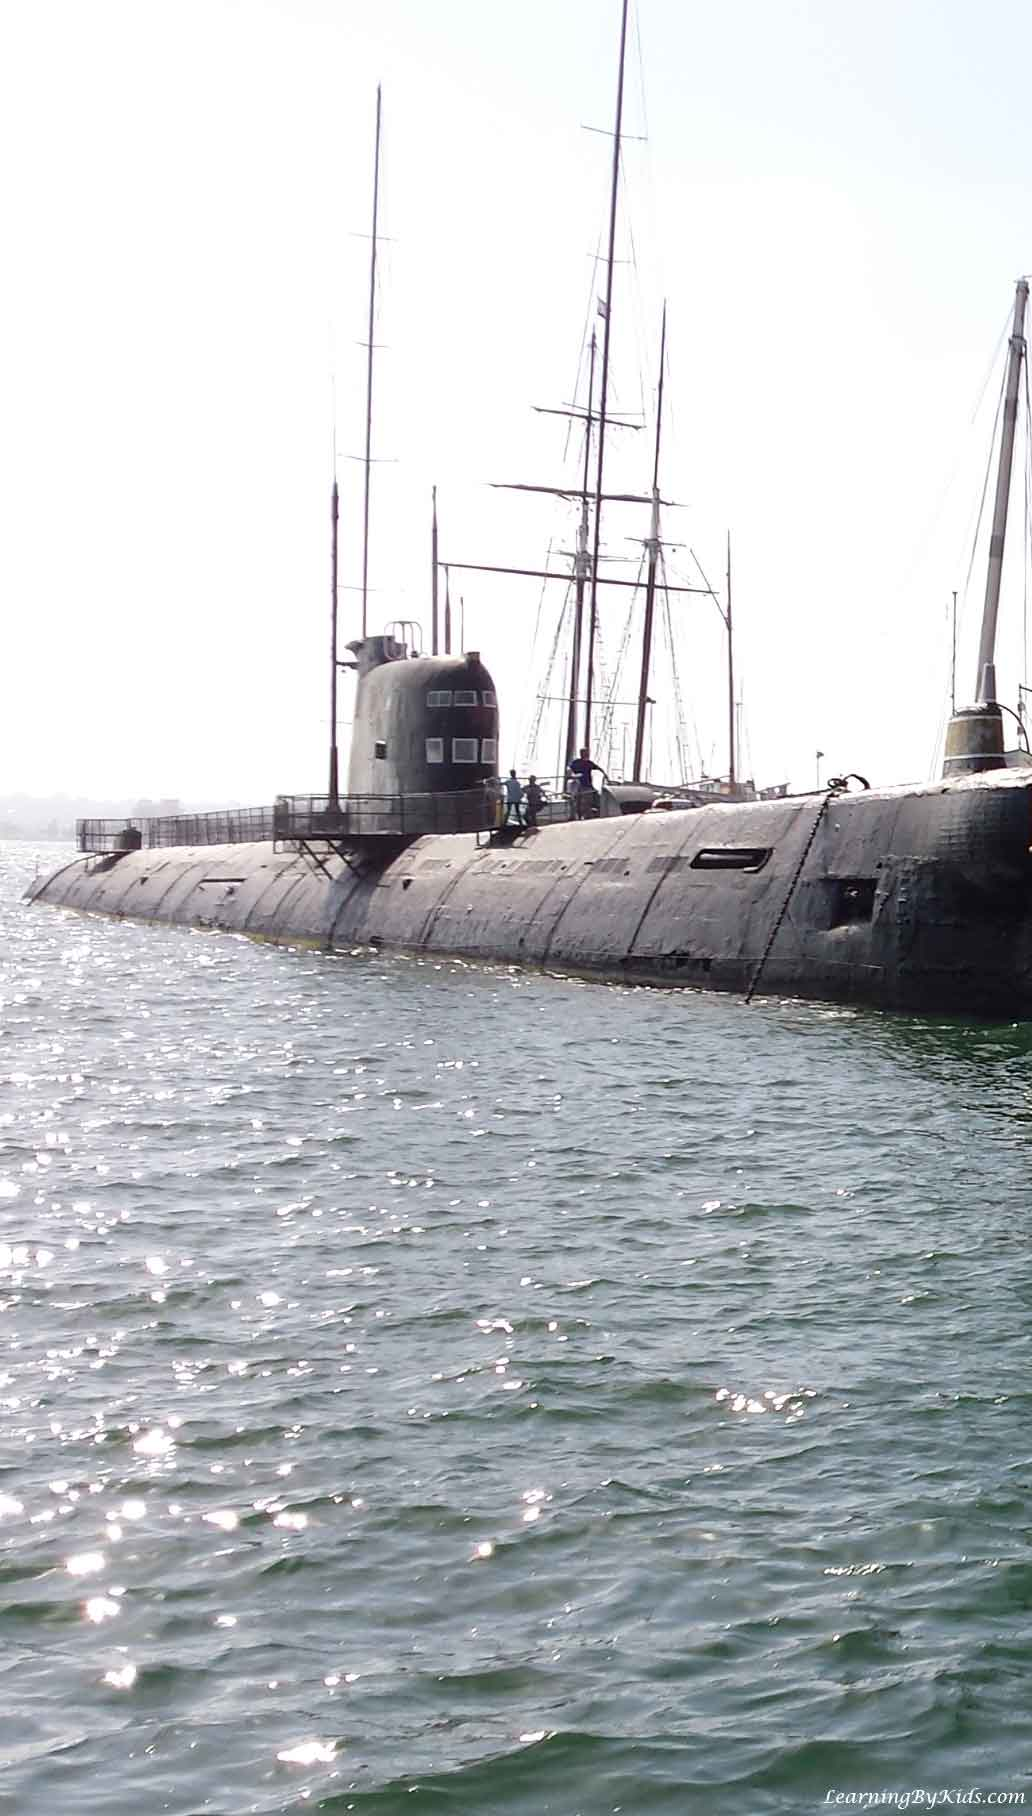 Visiting the Cold War Era Soviet B-39 Submarine | LearningByKids.com